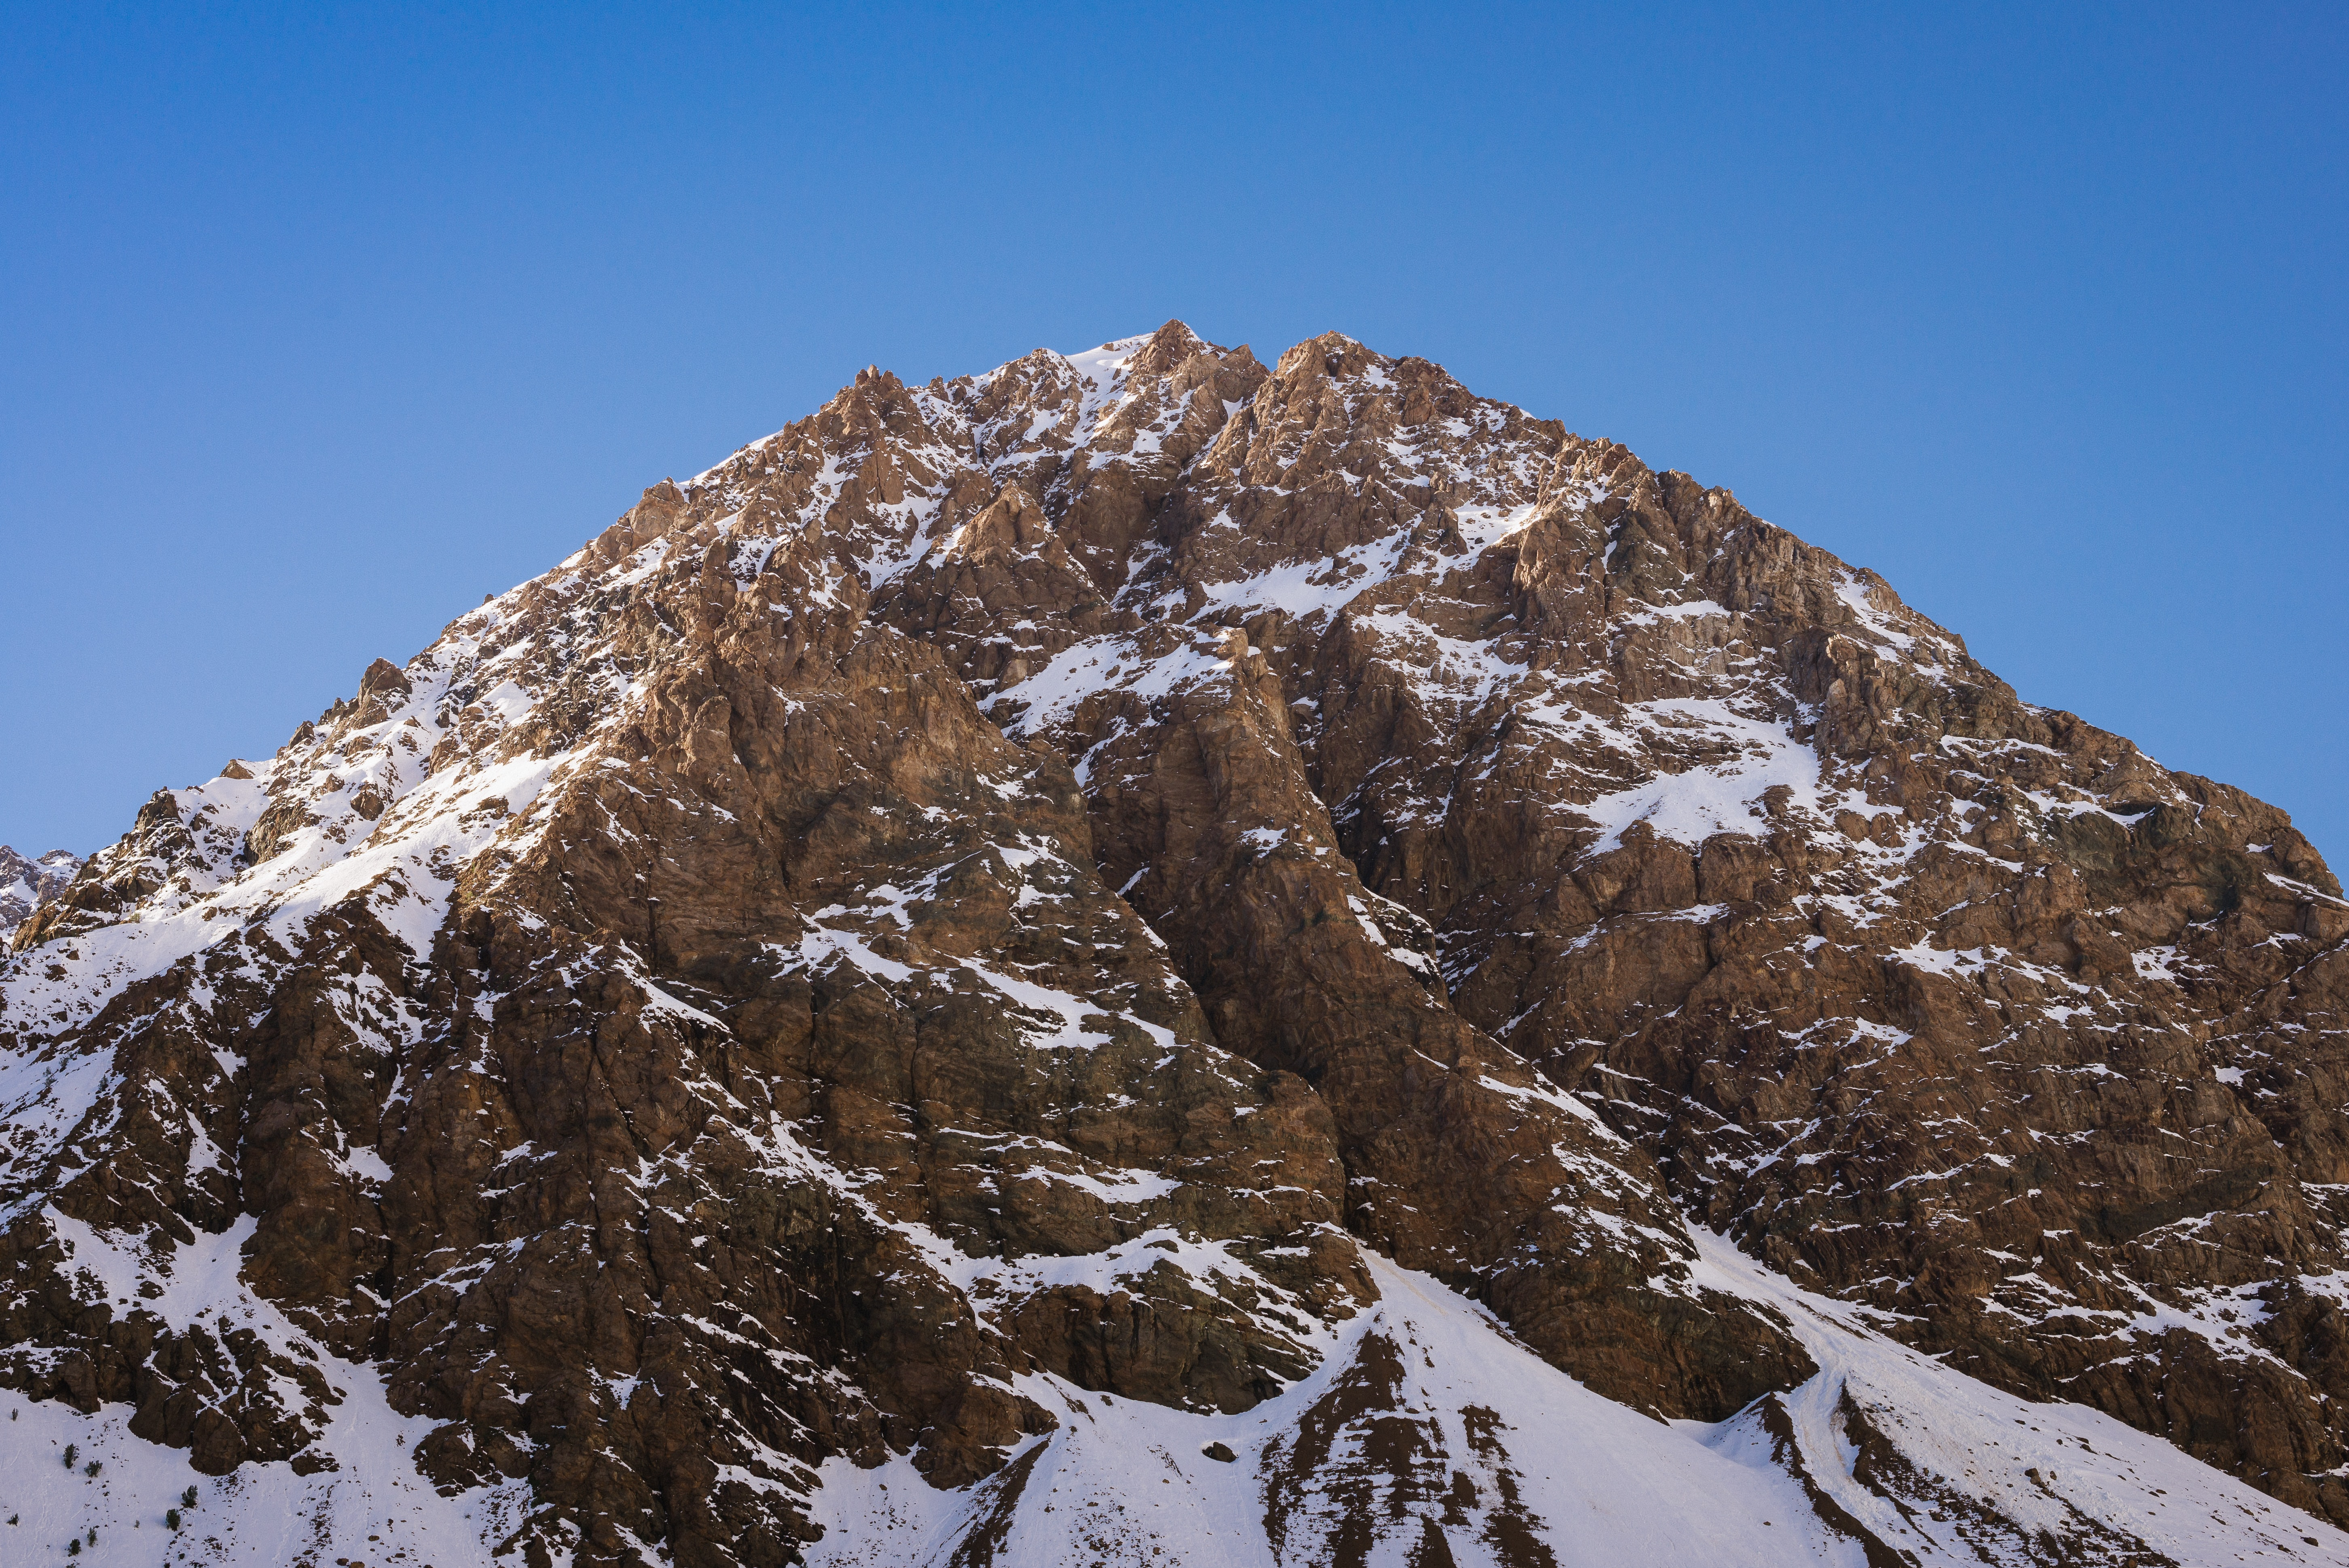 close up photo of brown snowcapped mountain at daytime